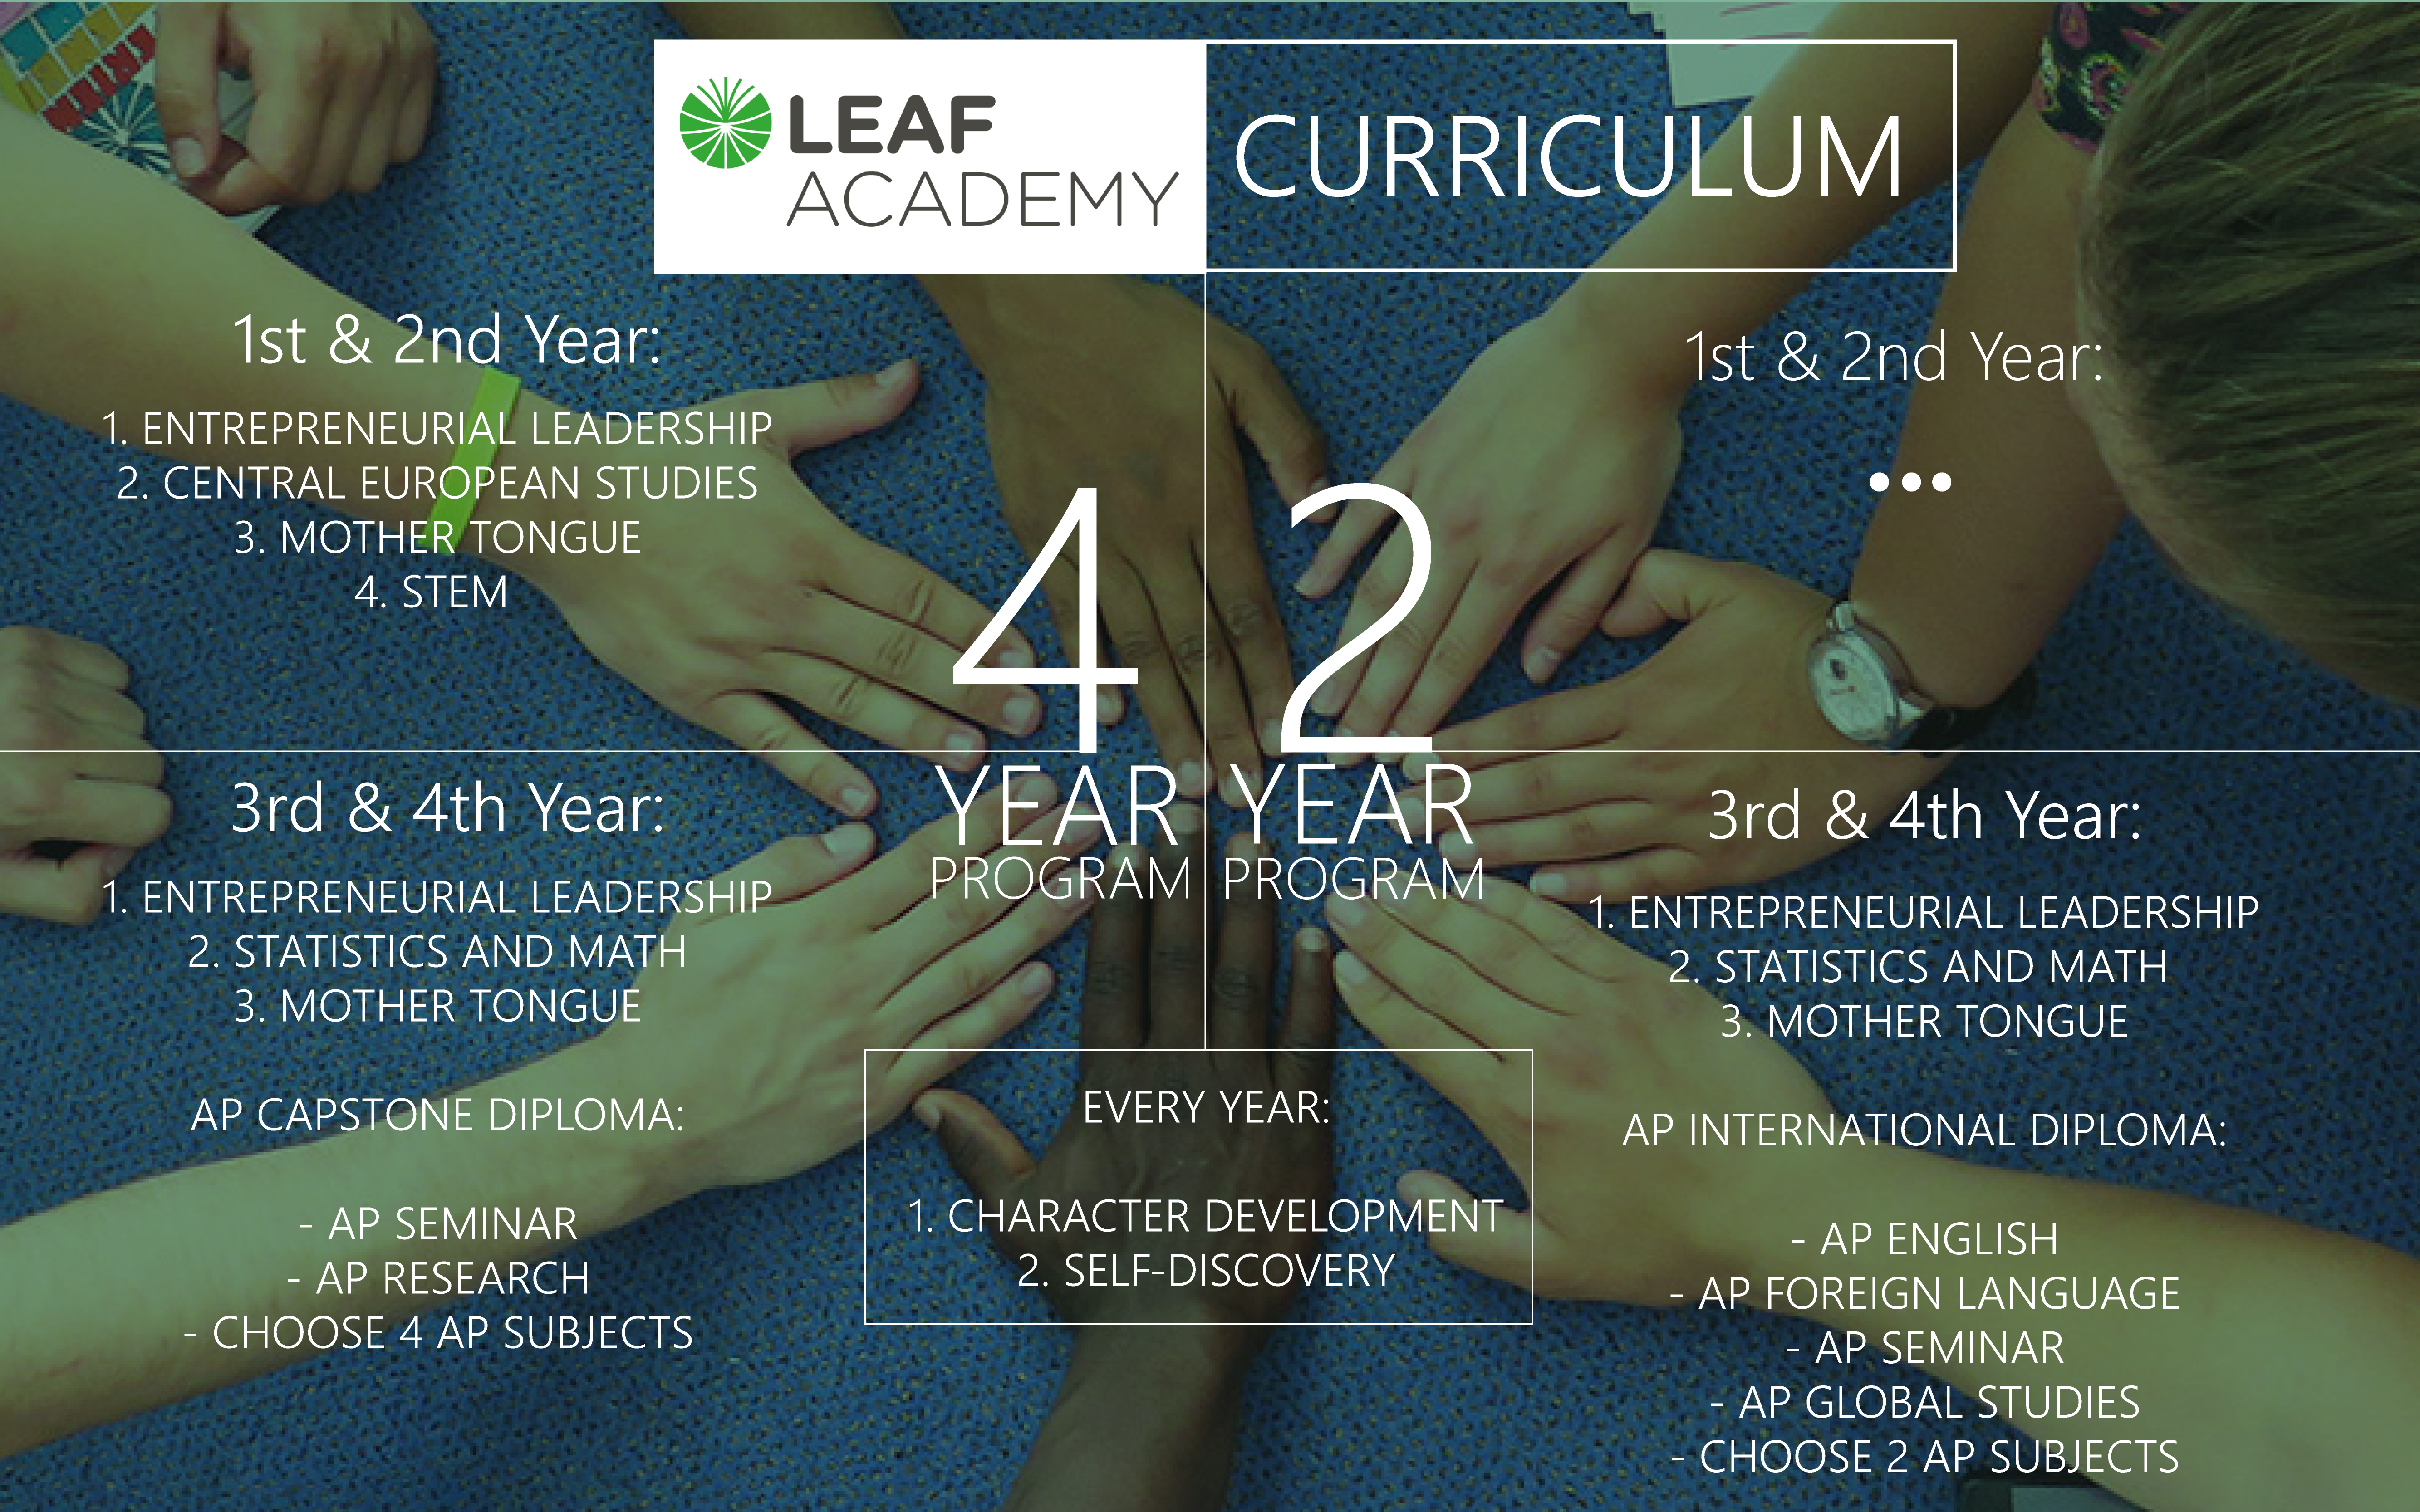 Curriculum of the LEAF Academy hign school